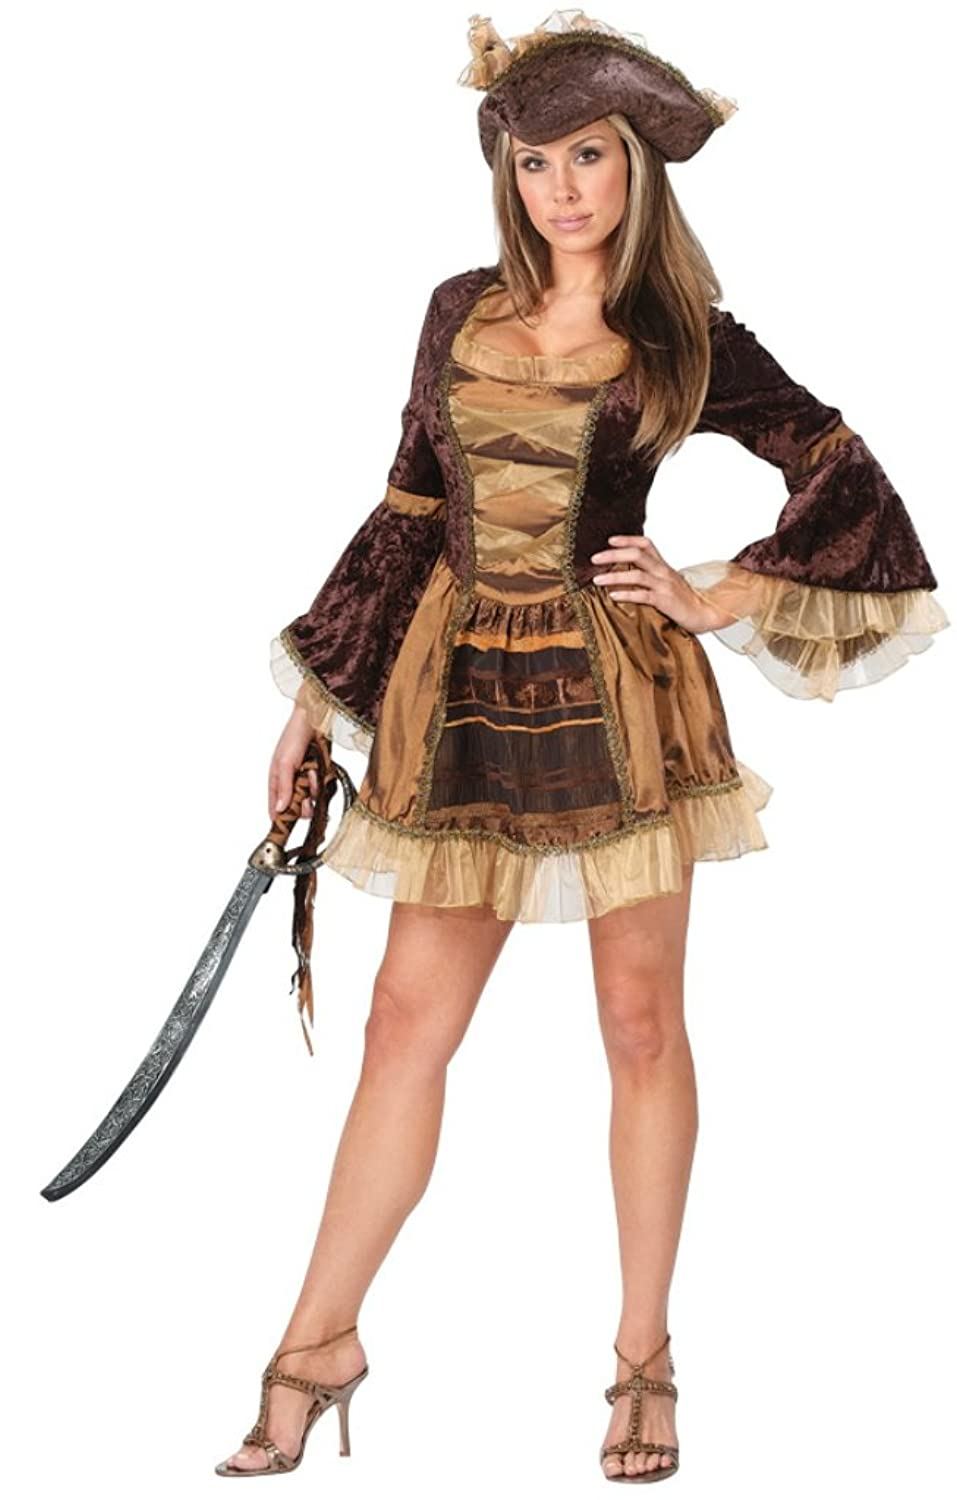 Funworld Womens Sexy Sassy Vixen Wench Victorian Pirate Theme Party Costume, S/M (2-8)